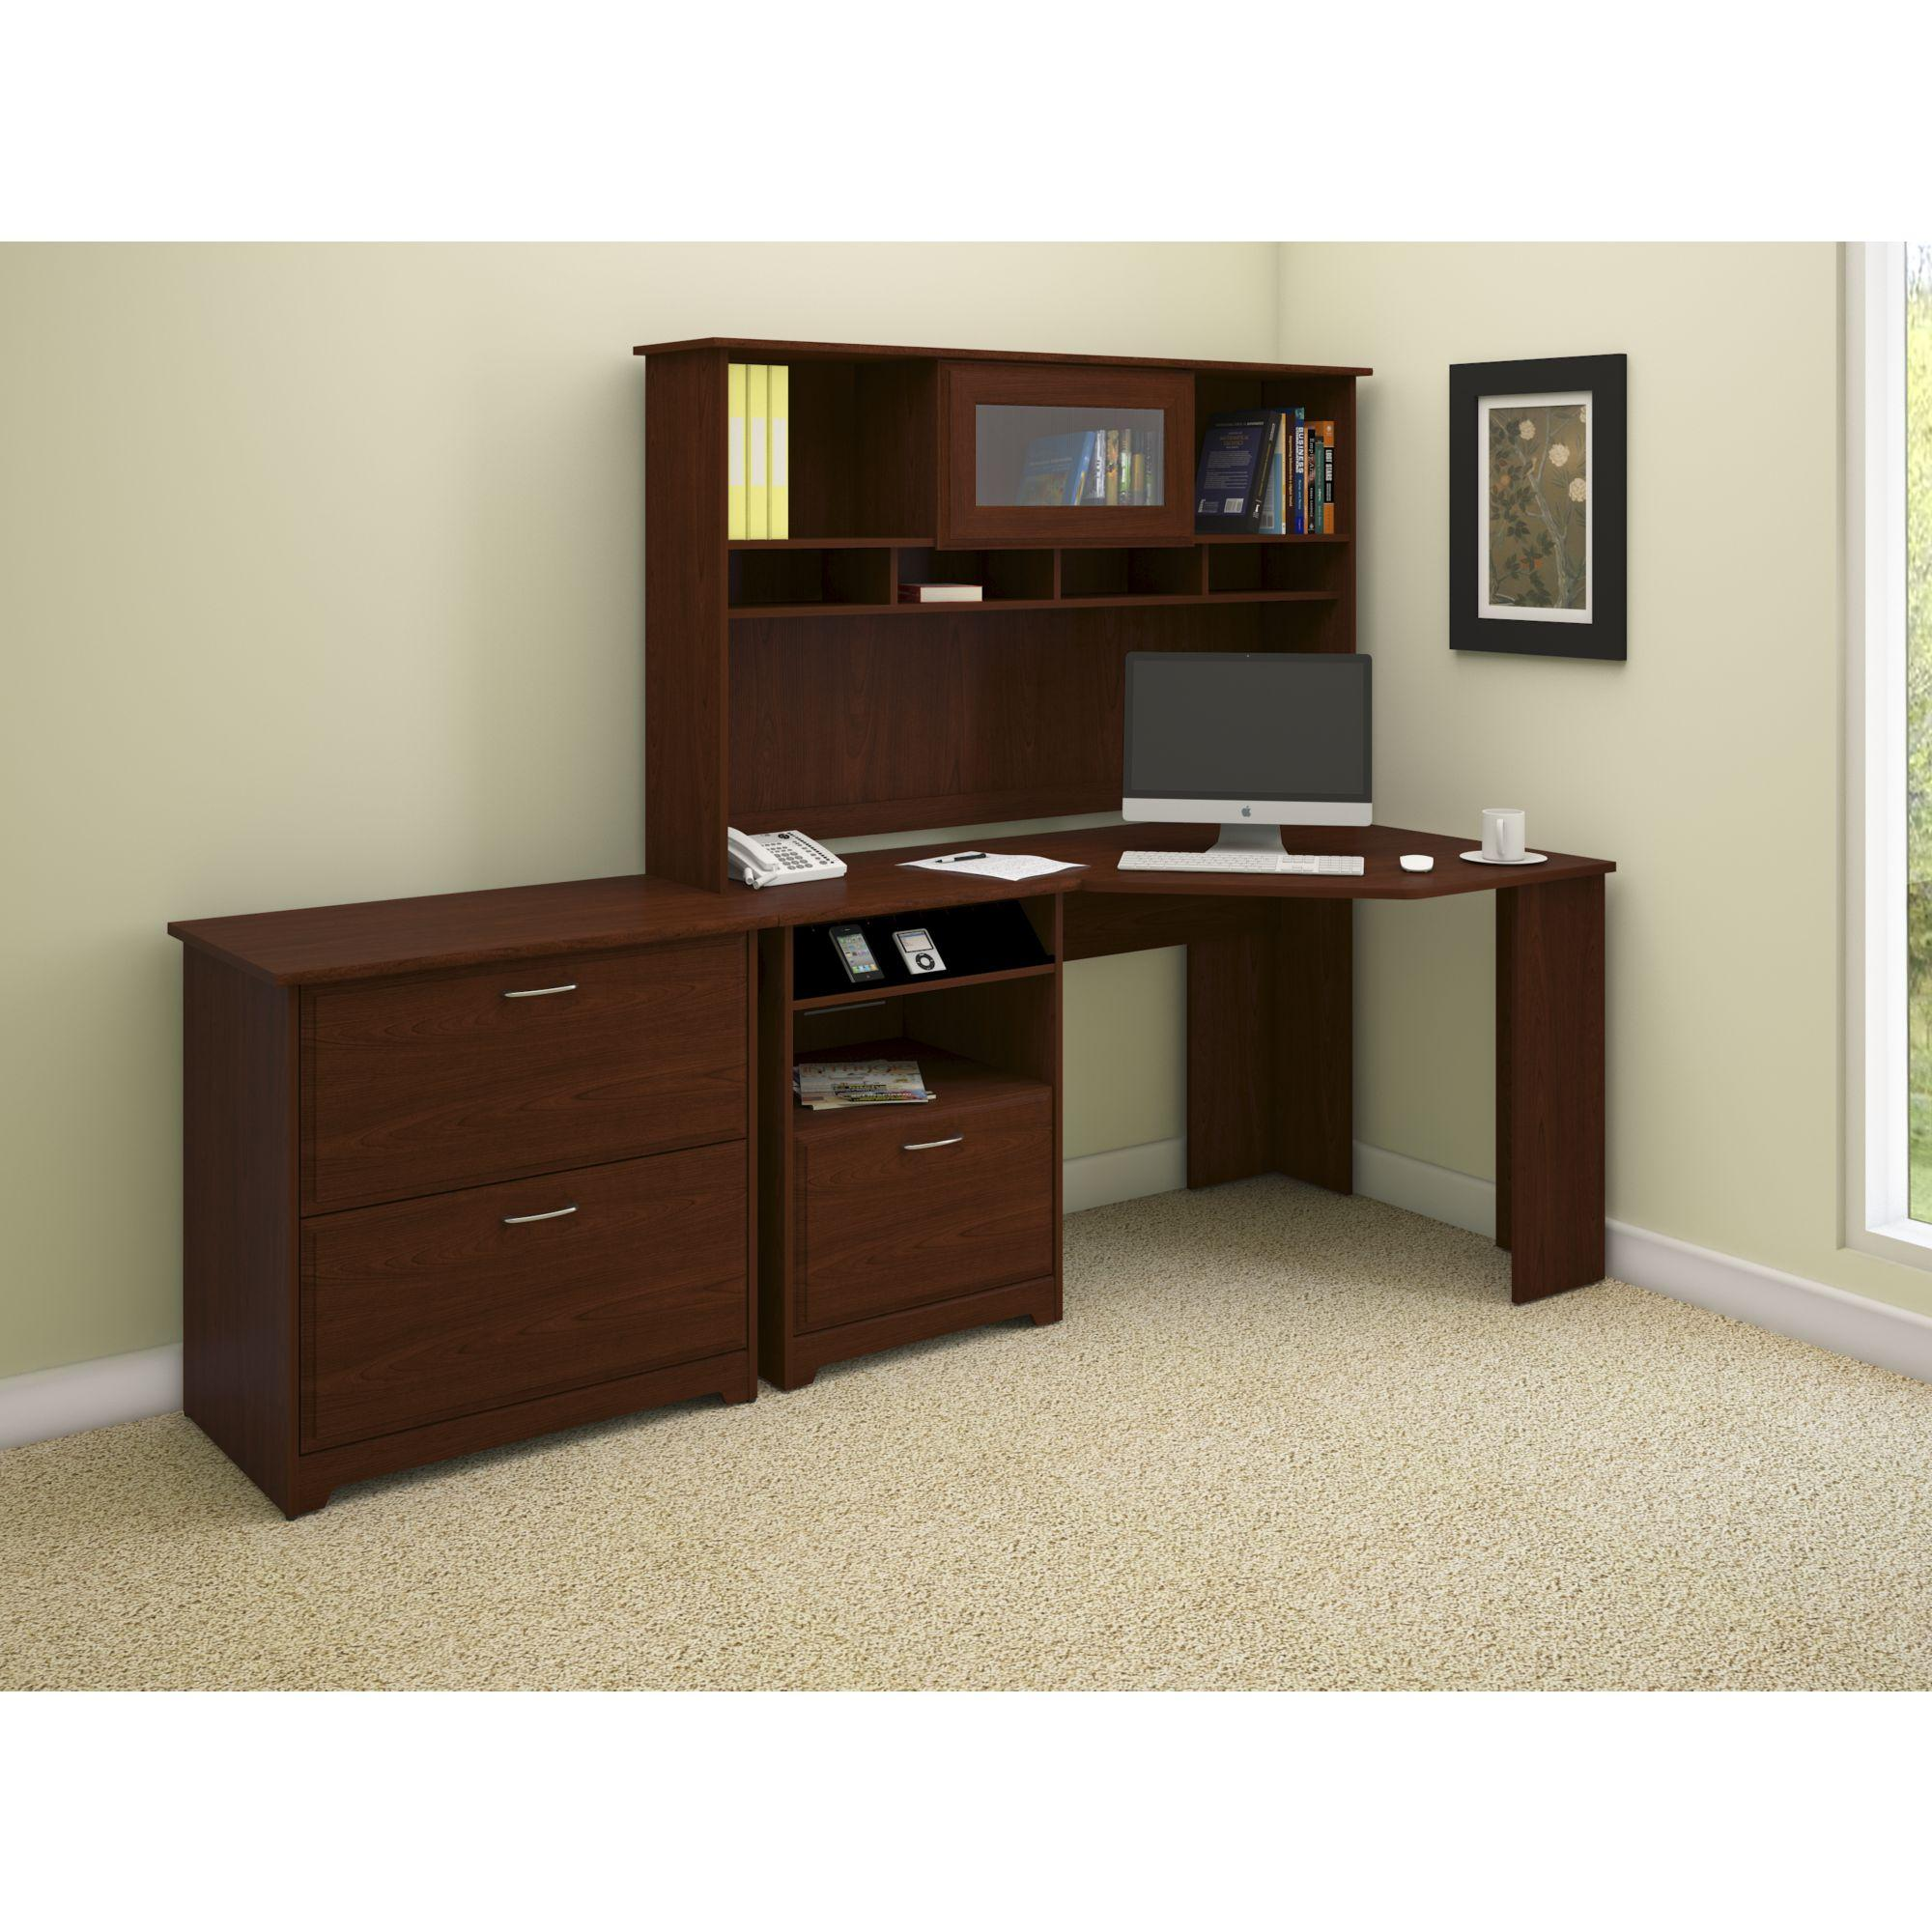 Amazon Com Bush Furniture Cabot Corner Desk With Hutch